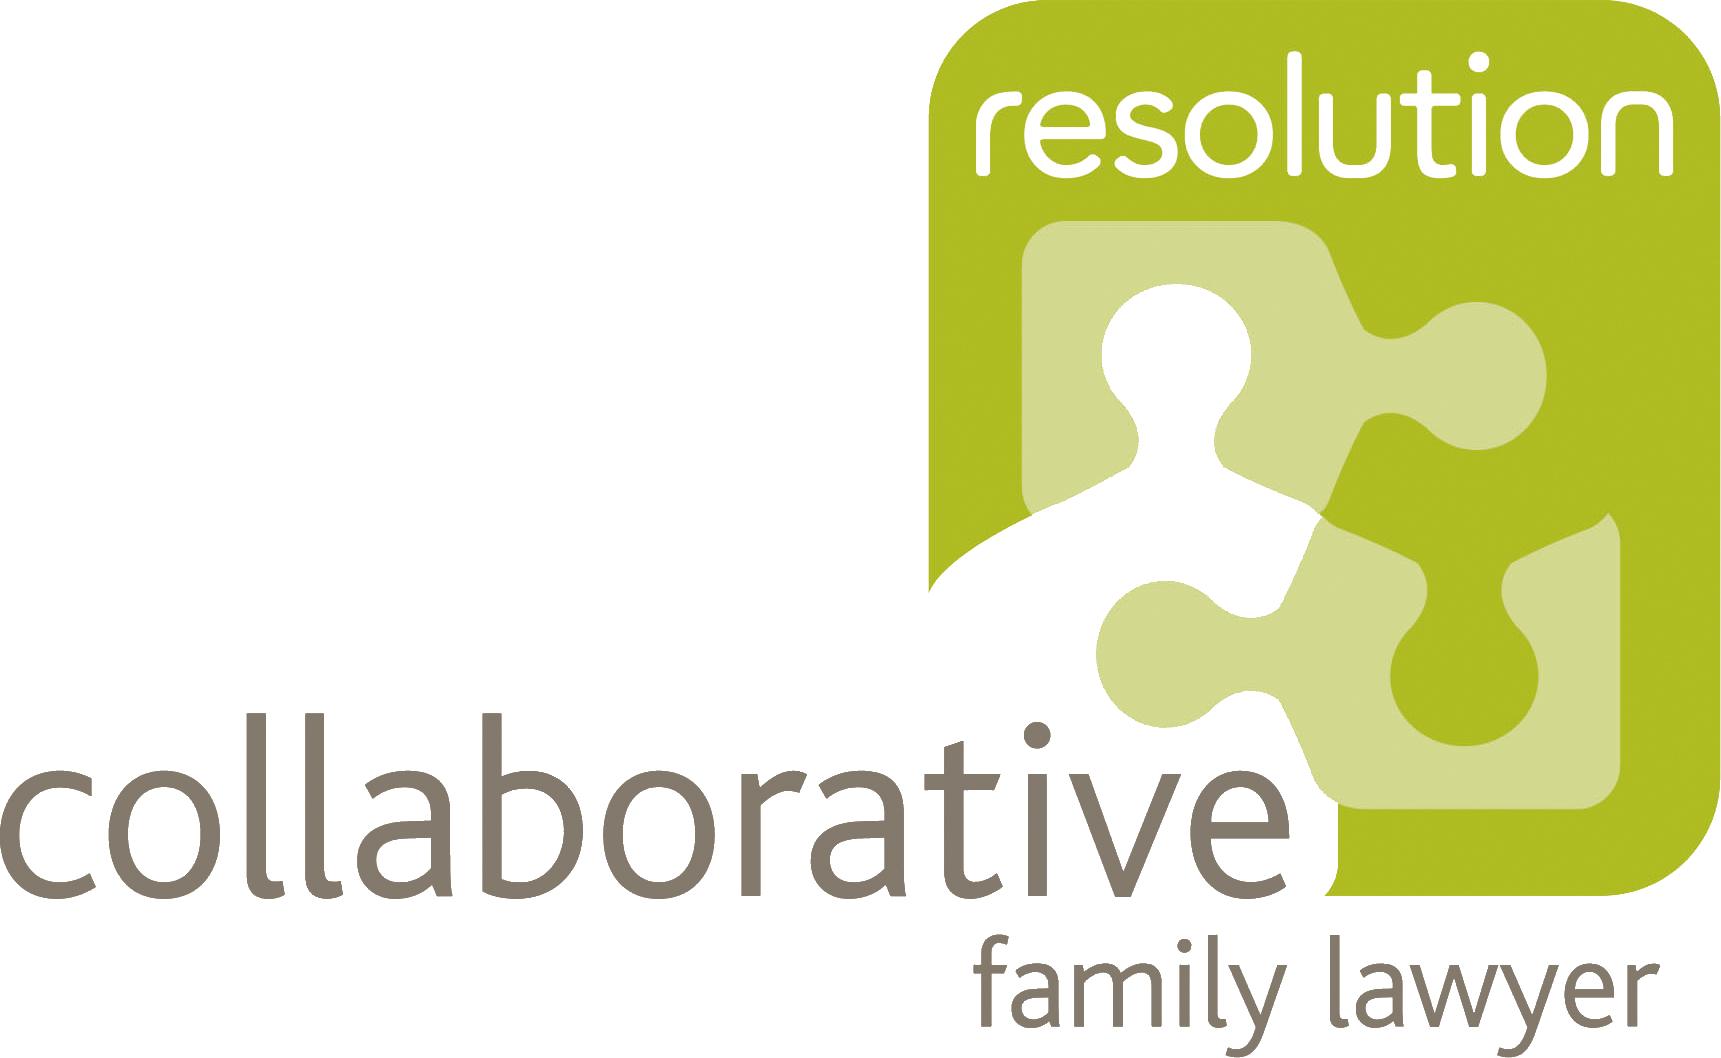 Resolution Collaborative Family Law Logo